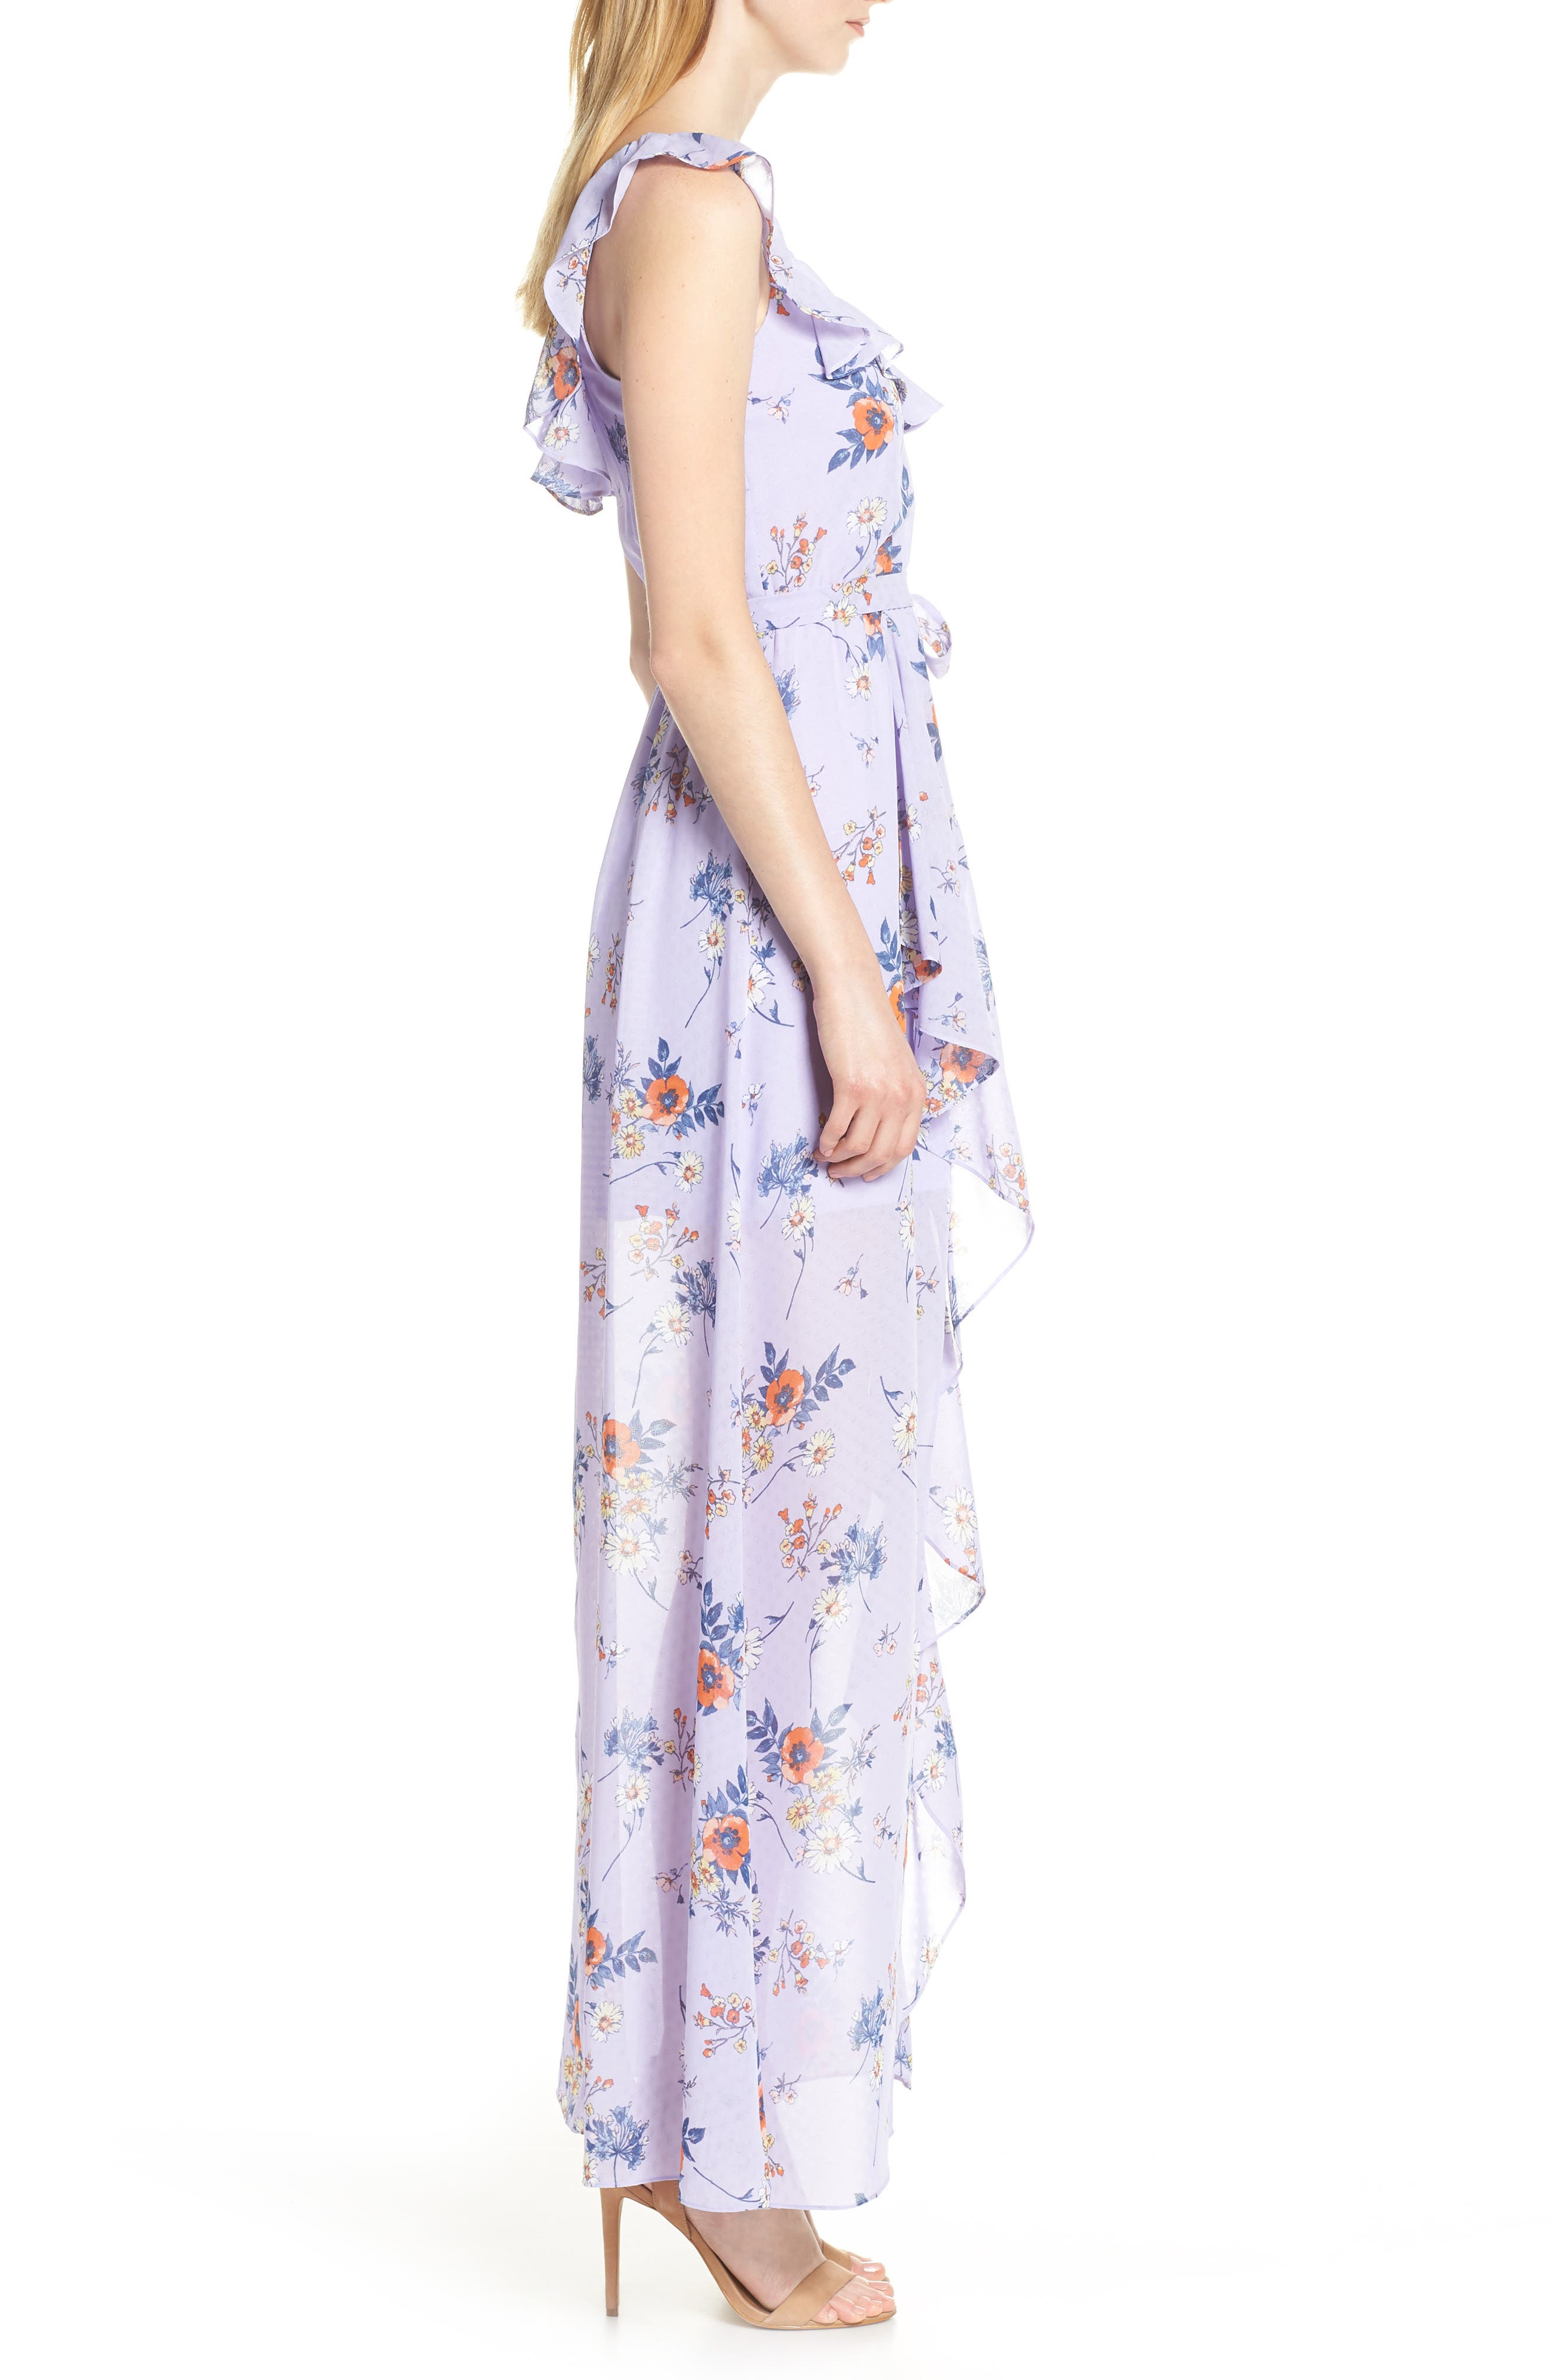 ALI & JAY, Sure Thing Maxi Dress, Alternate thumbnail 4, color, LAVENDER FIELD FLORAL